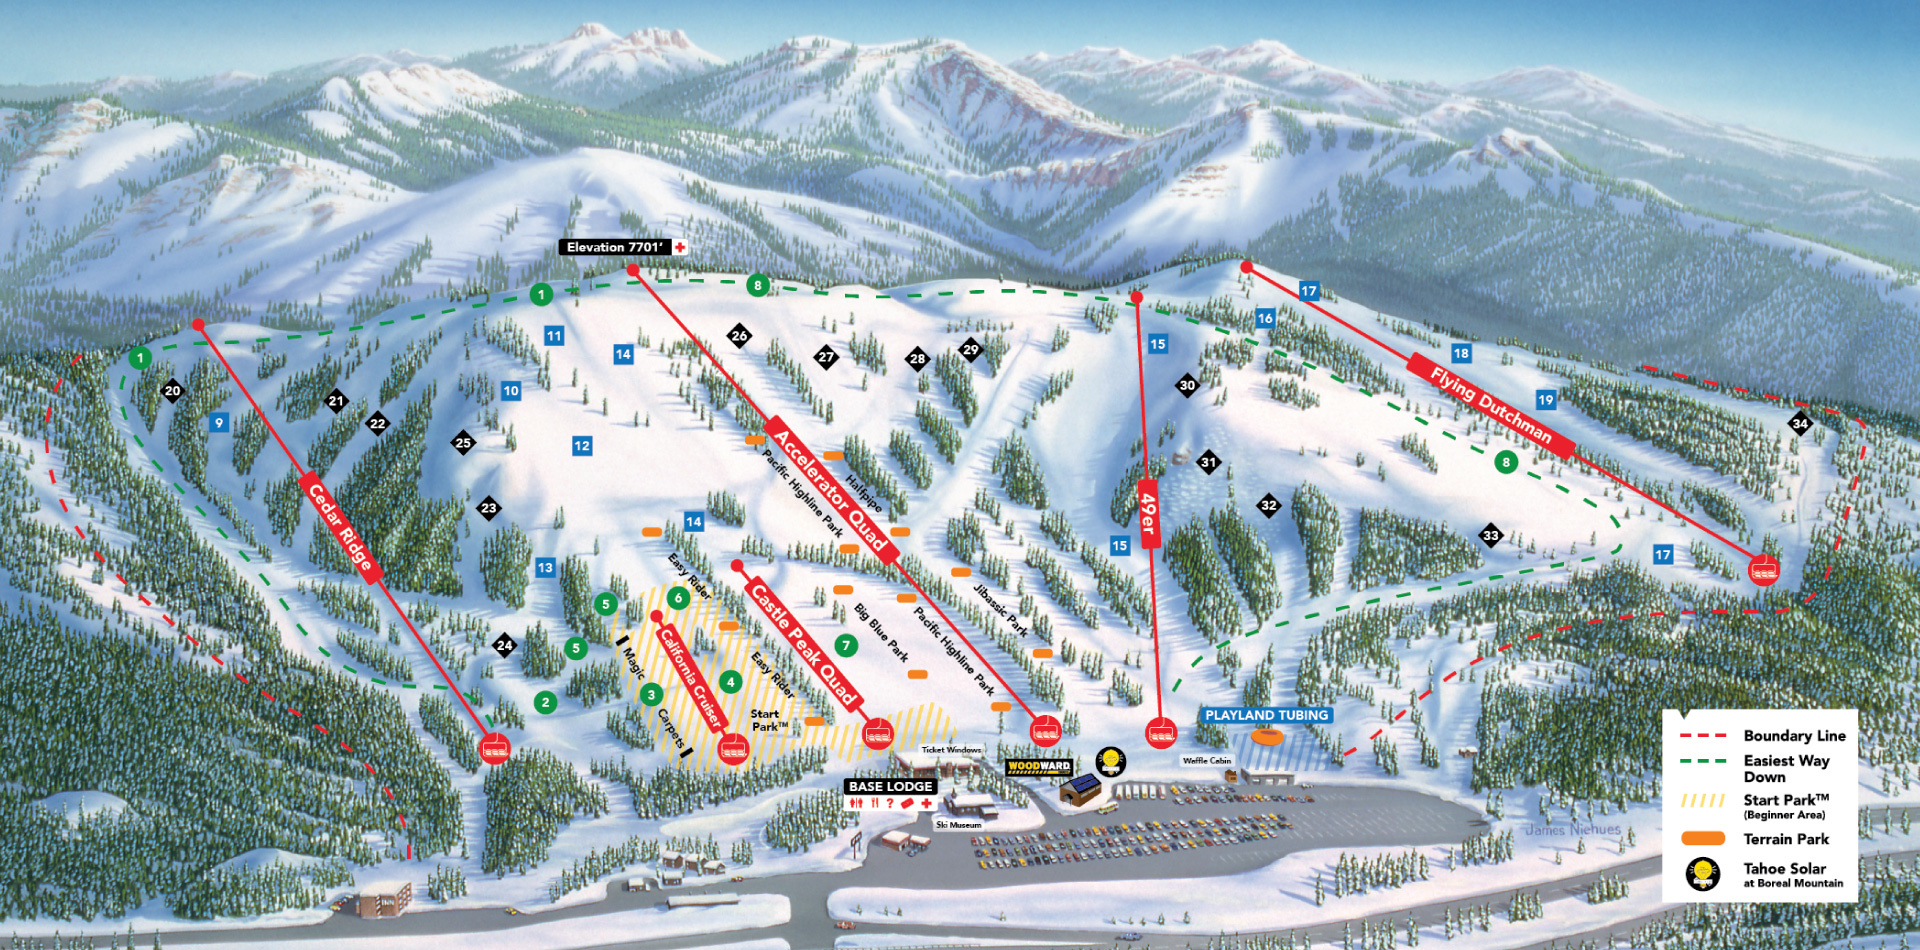 boreal mountain resort trail map | onthesnow